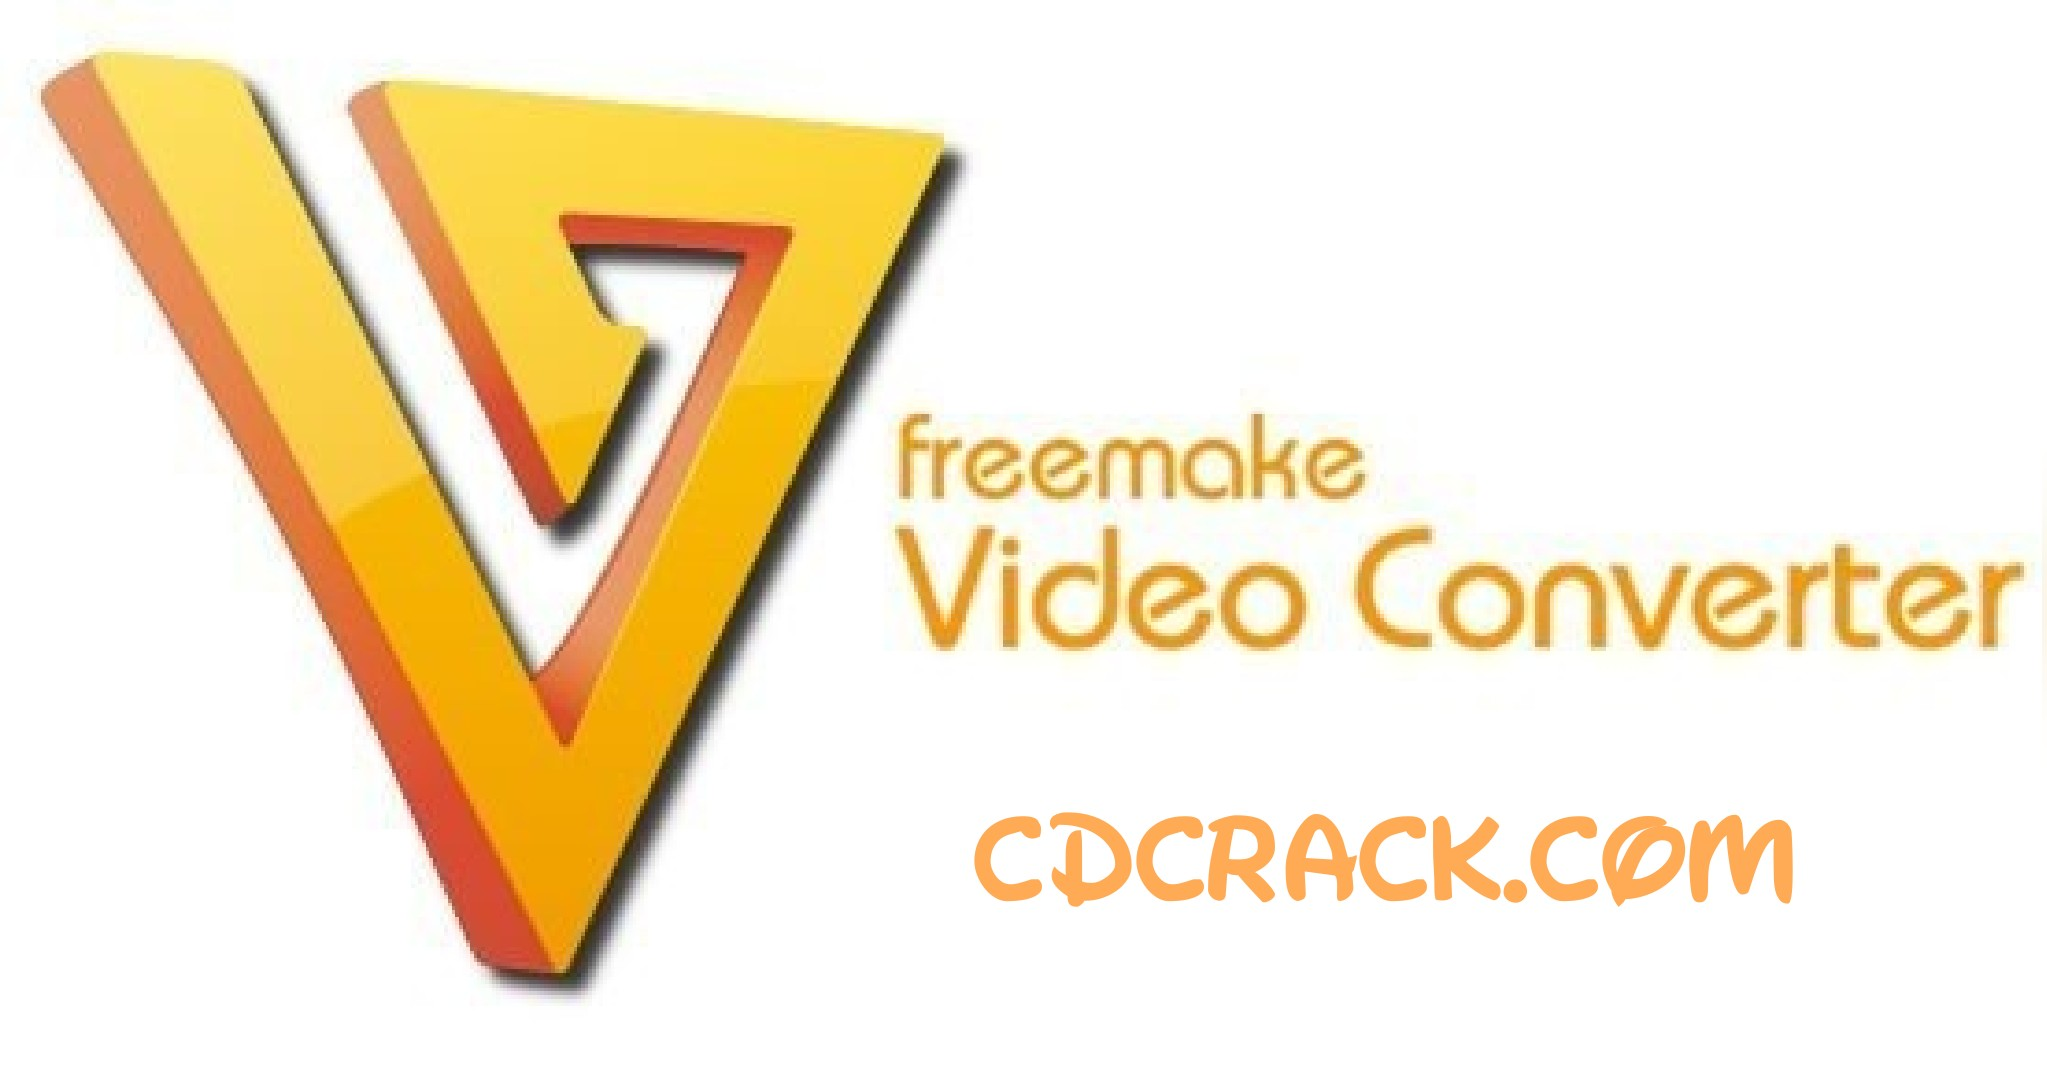 Freemake Video Converter 4.1.10 Crack With Serial Key 2020